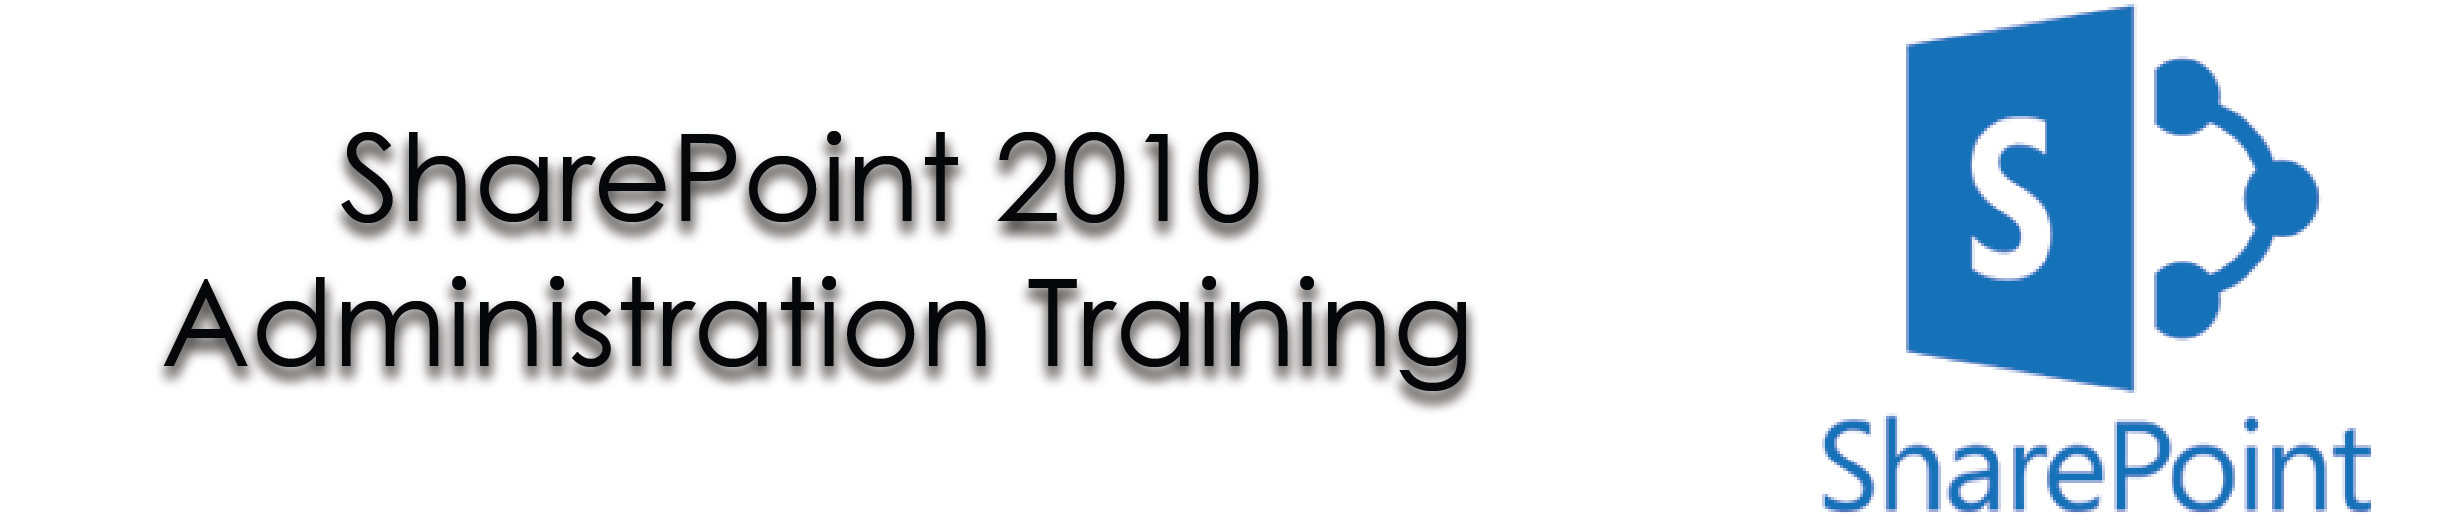 SharePoint - ADMIN Online Training